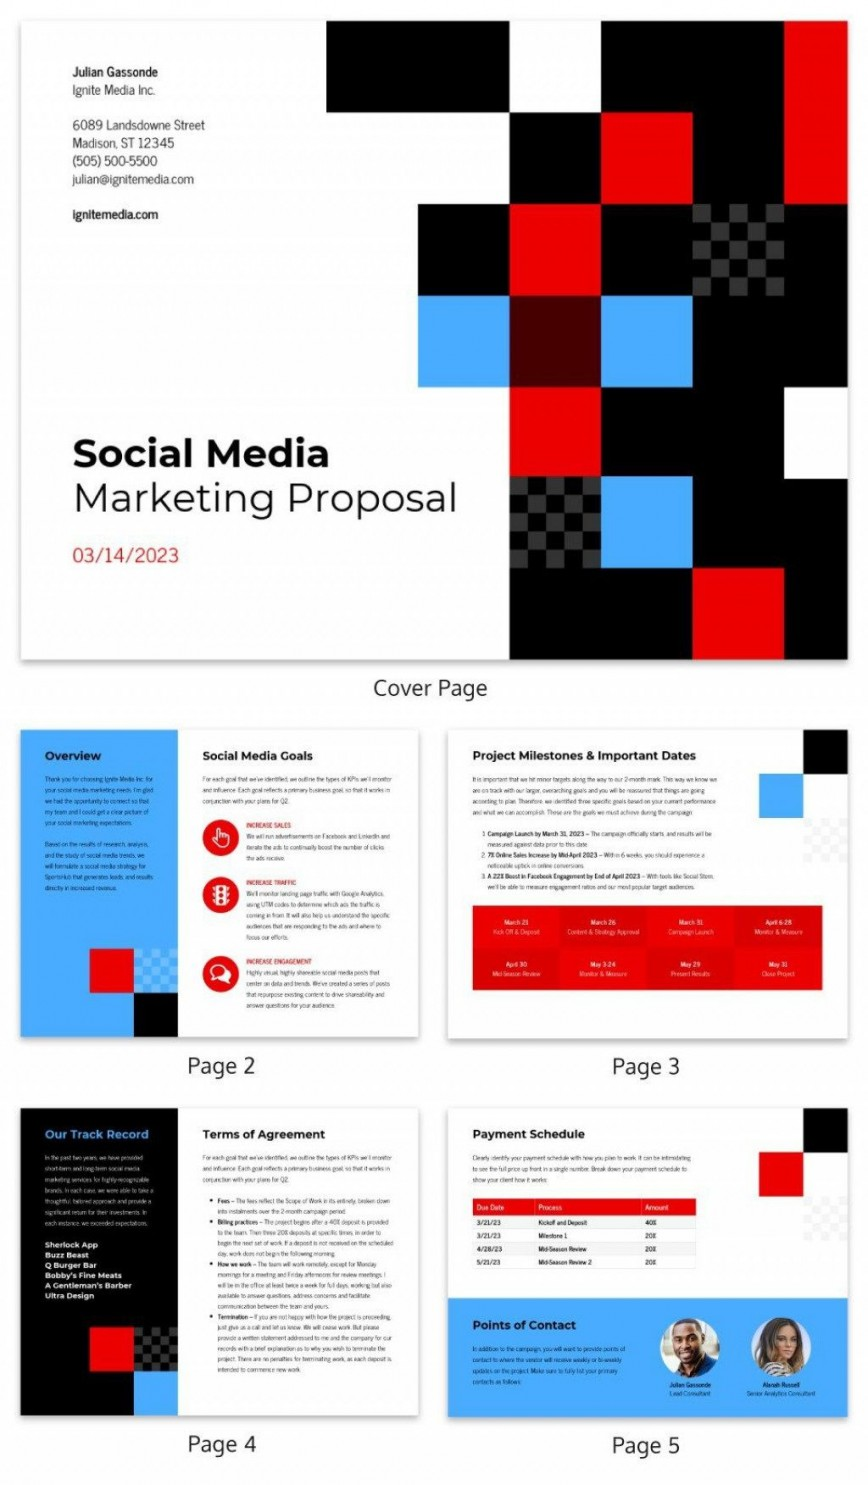 004 Fascinating Social Media Proposal Template Ppt High Def 868